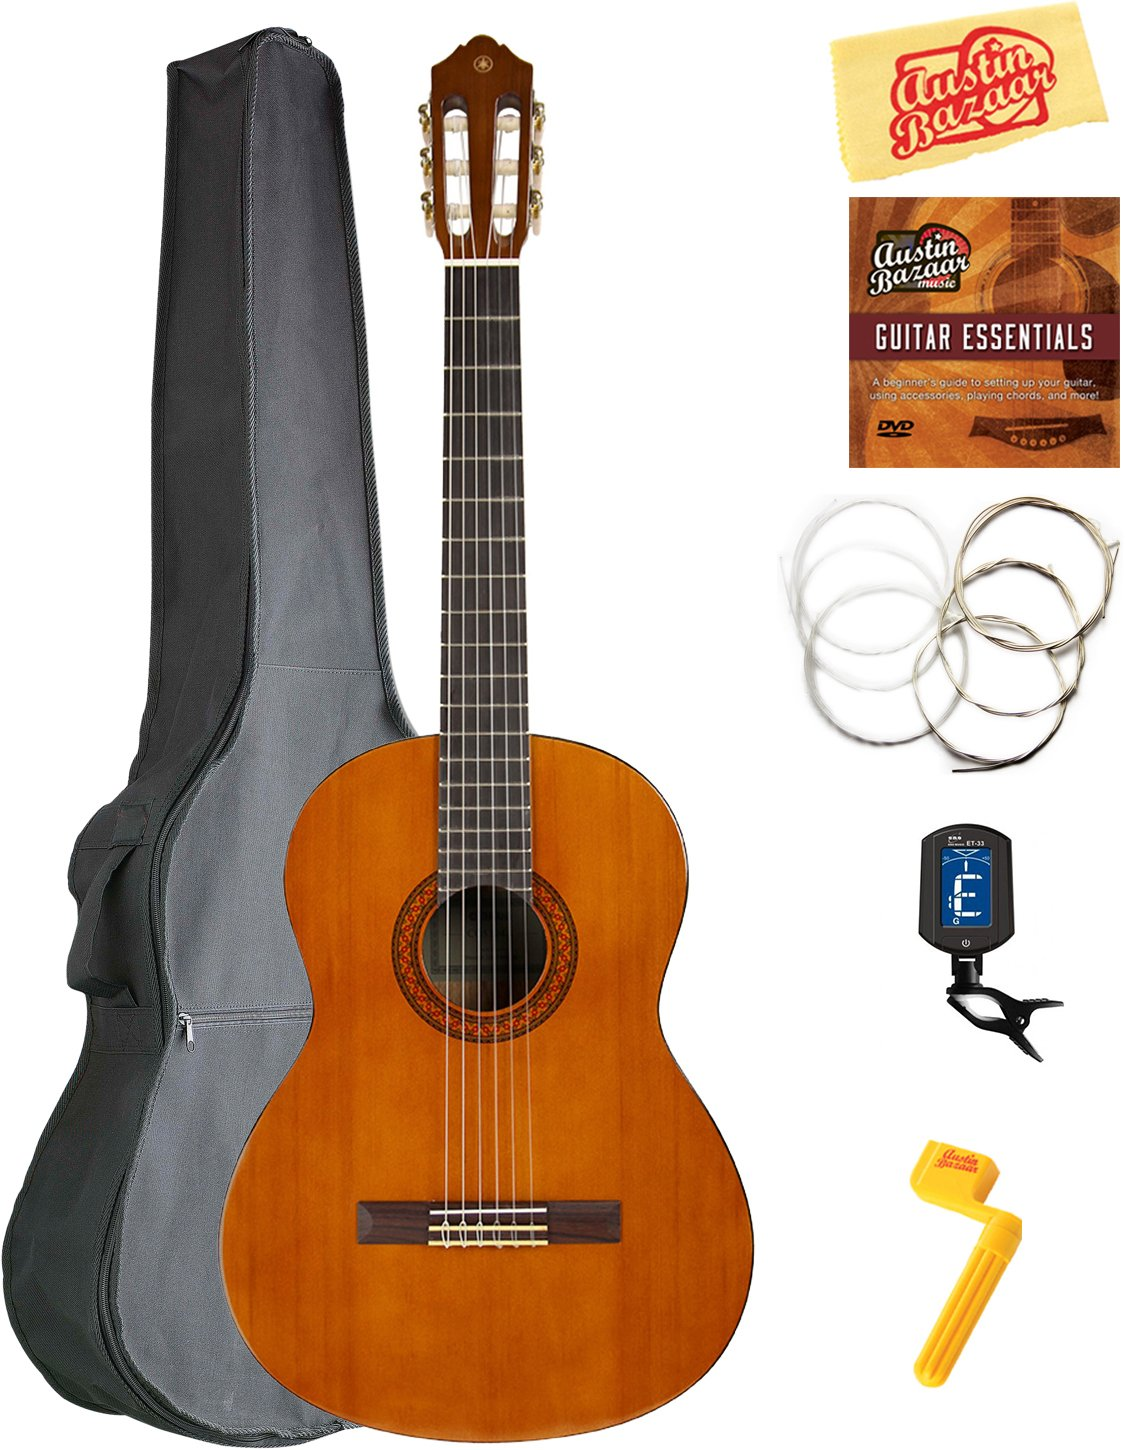 Yamaha C40 Classical Guitar Bundle with Gig Bag, Tuner, Strings, String Winder, Austin Bazaar Instructional DVD, and Polishing Cloth by Yamaha